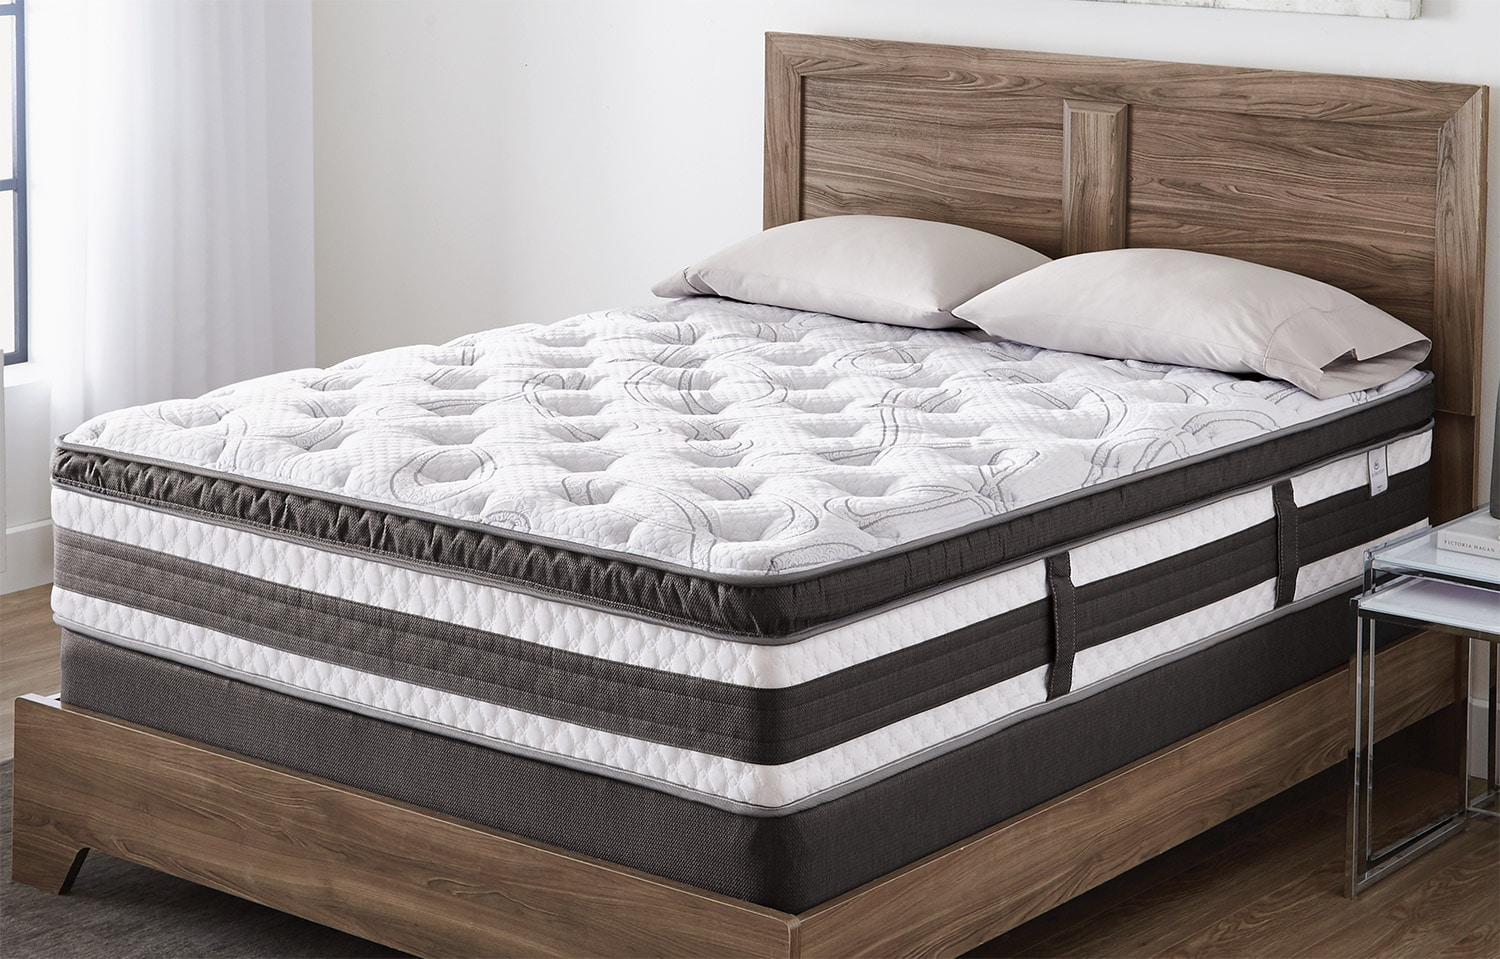 Serta iCollection™ Kingsport Euro-Top Luxury Firm Queen Mattress Set